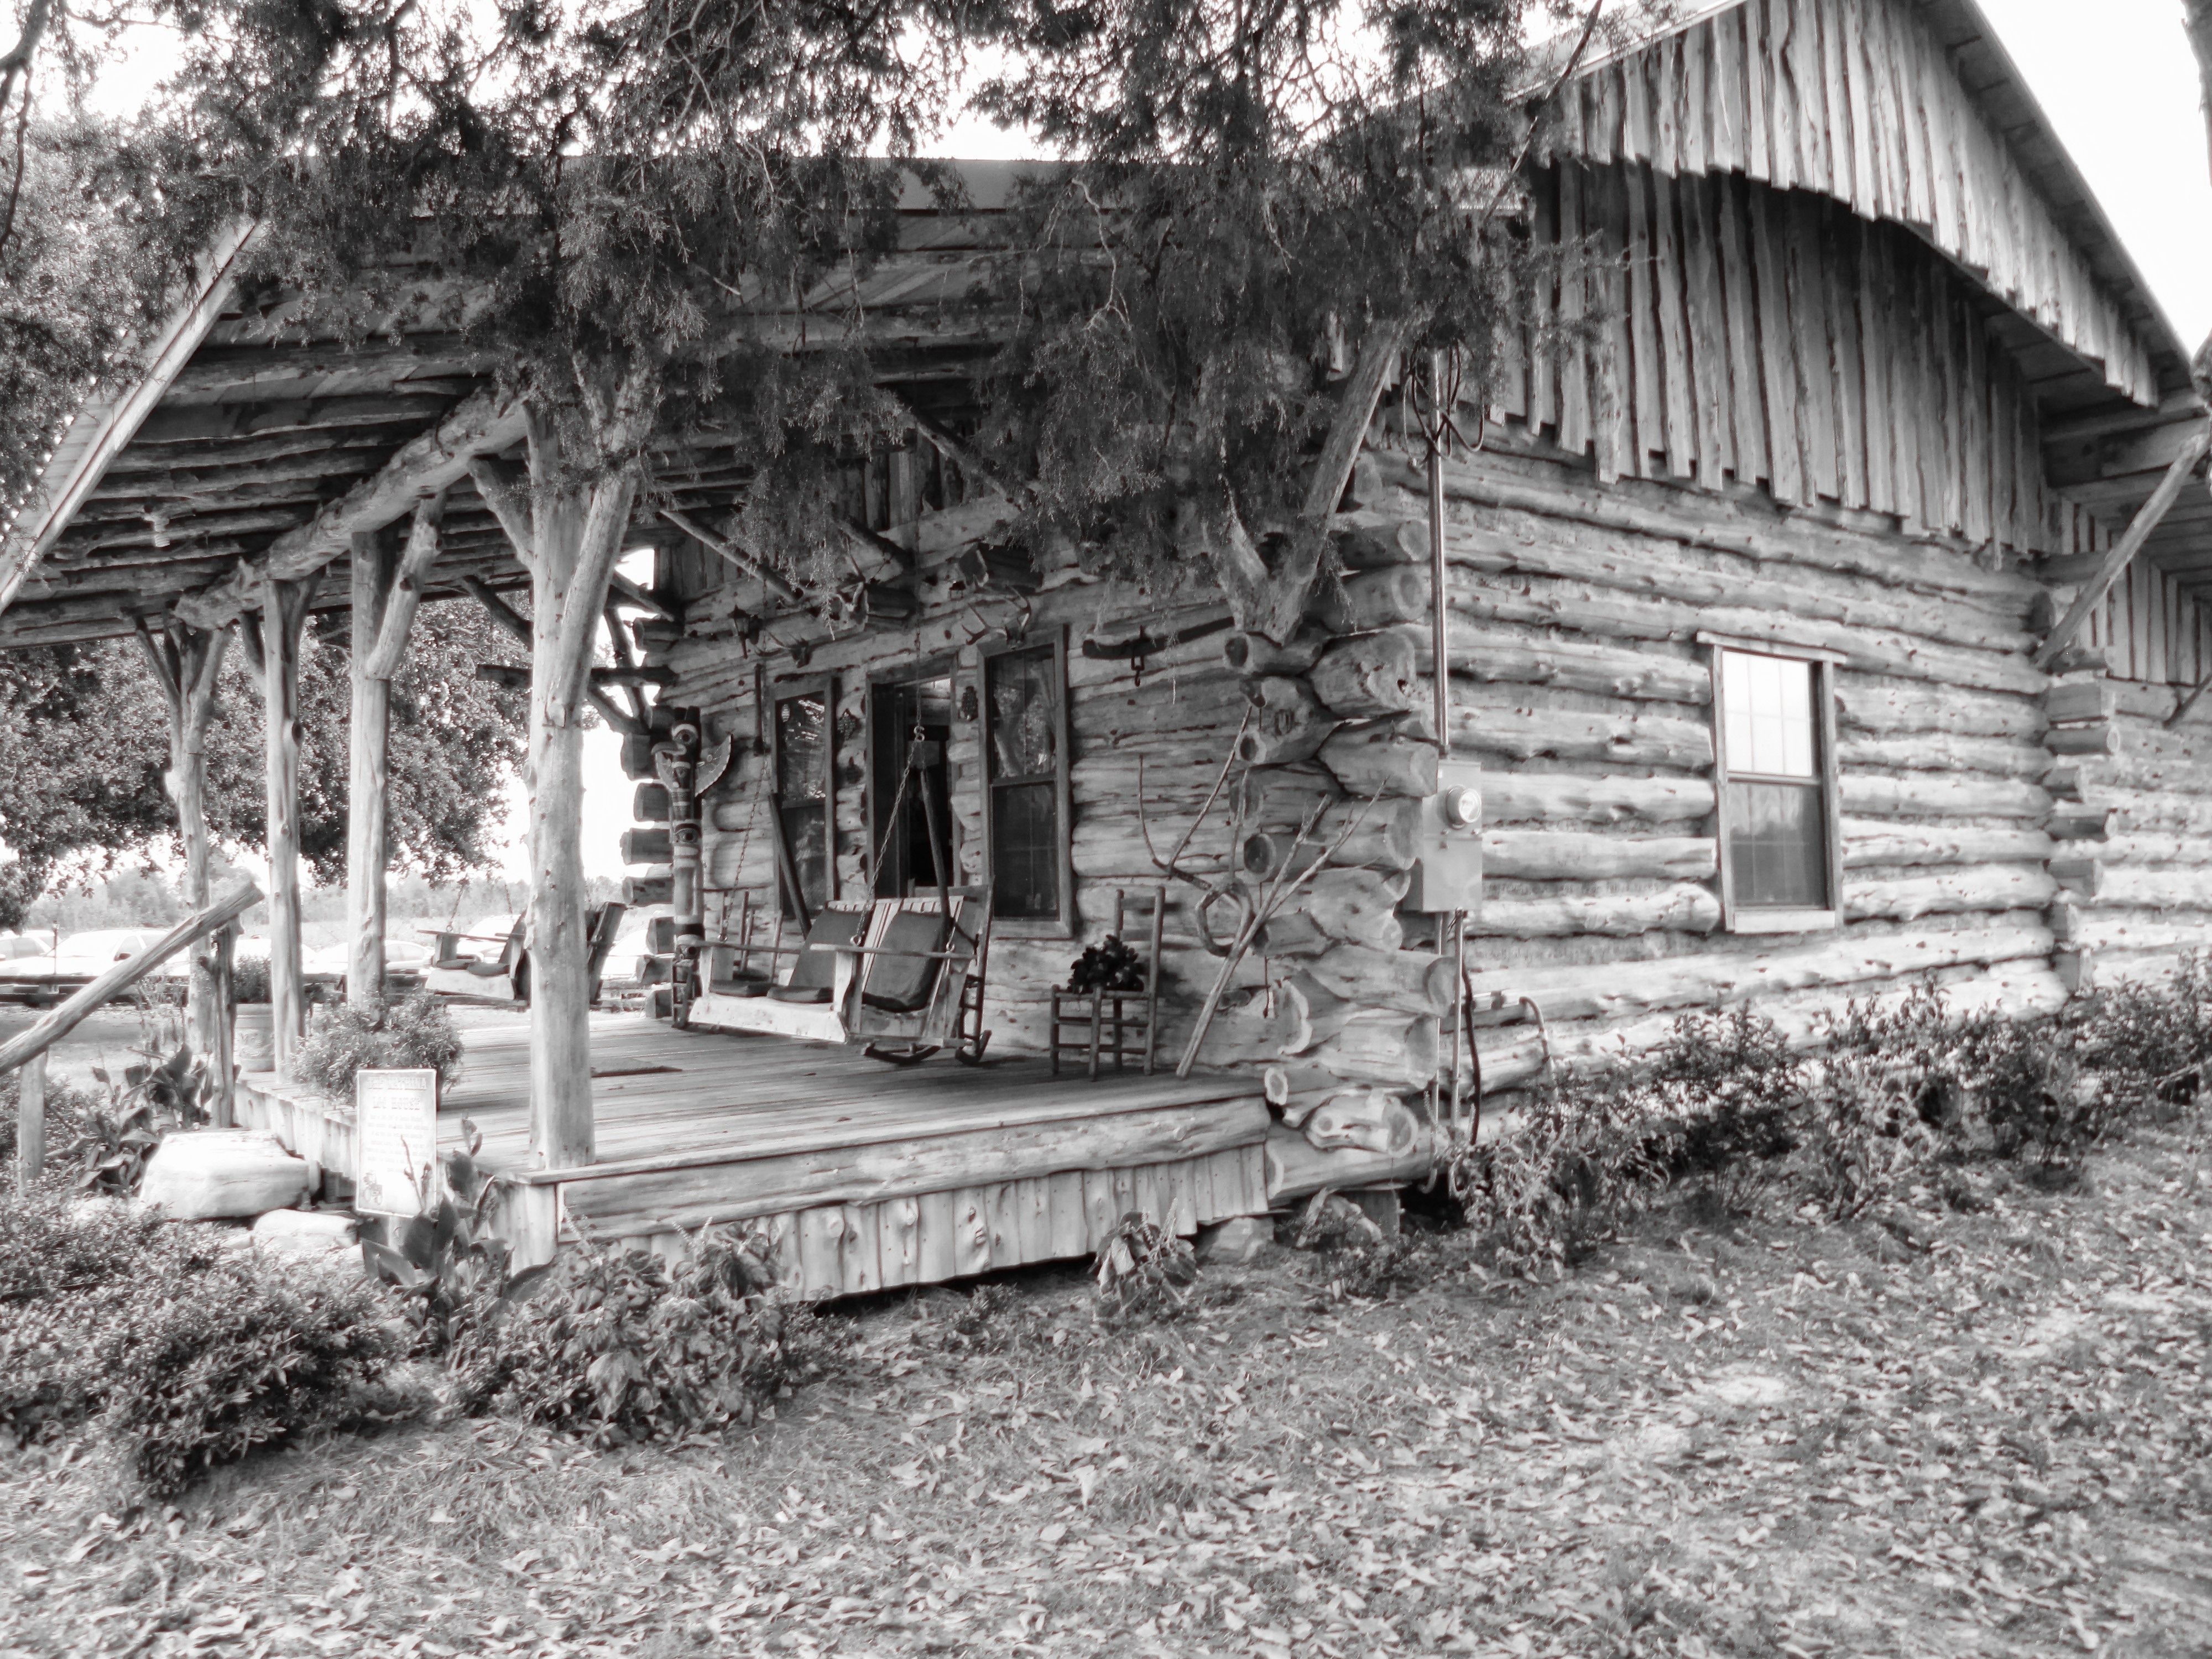 bath natural united heaven choose valley east destinations tubs cove guests view sleeping from retreats log cabins sized cabin six can with two s brothers heavens wears hot accommodation the comfortably cozy one us louisiana of states queen bedroom a is in